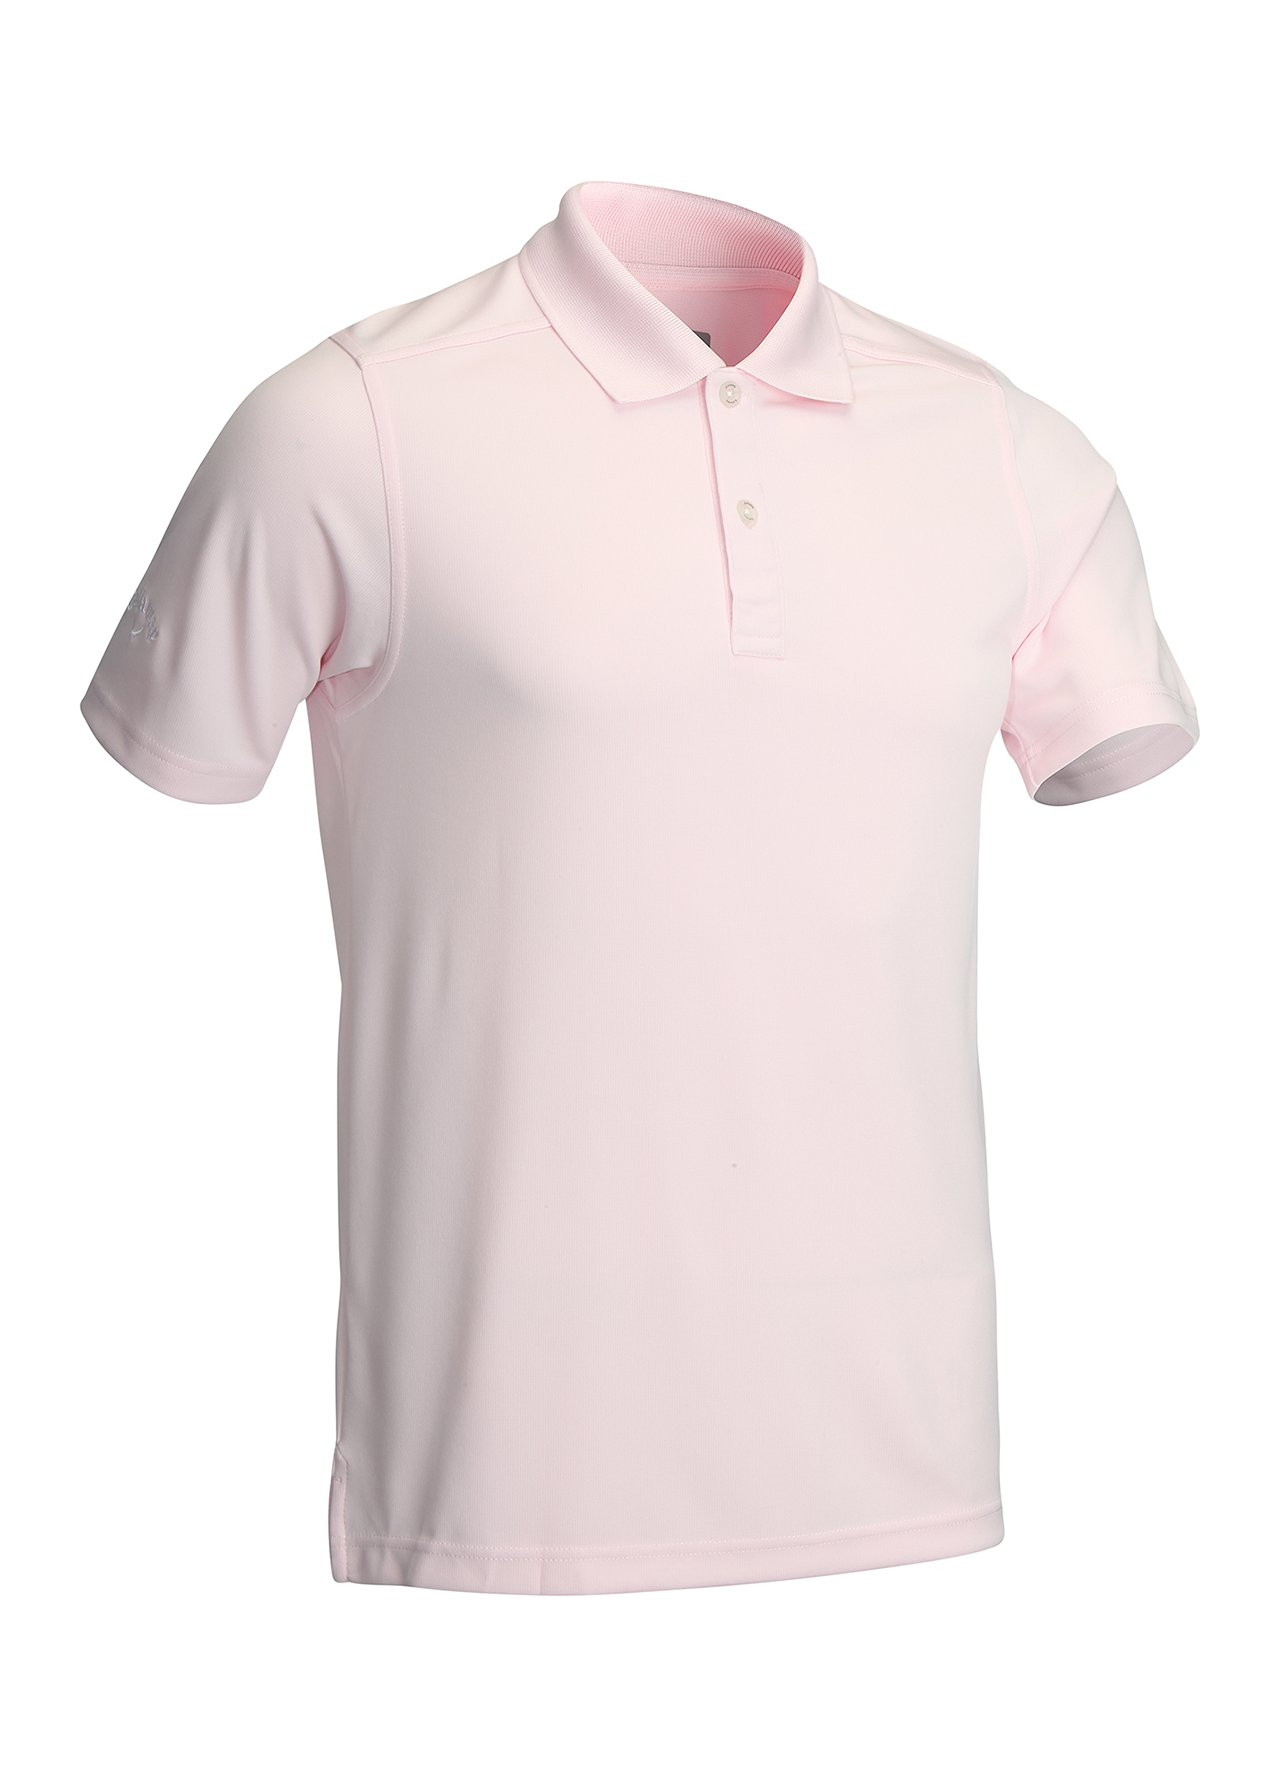 Callaway Mens Golf Textured Solid Polo Shirt Sports Top